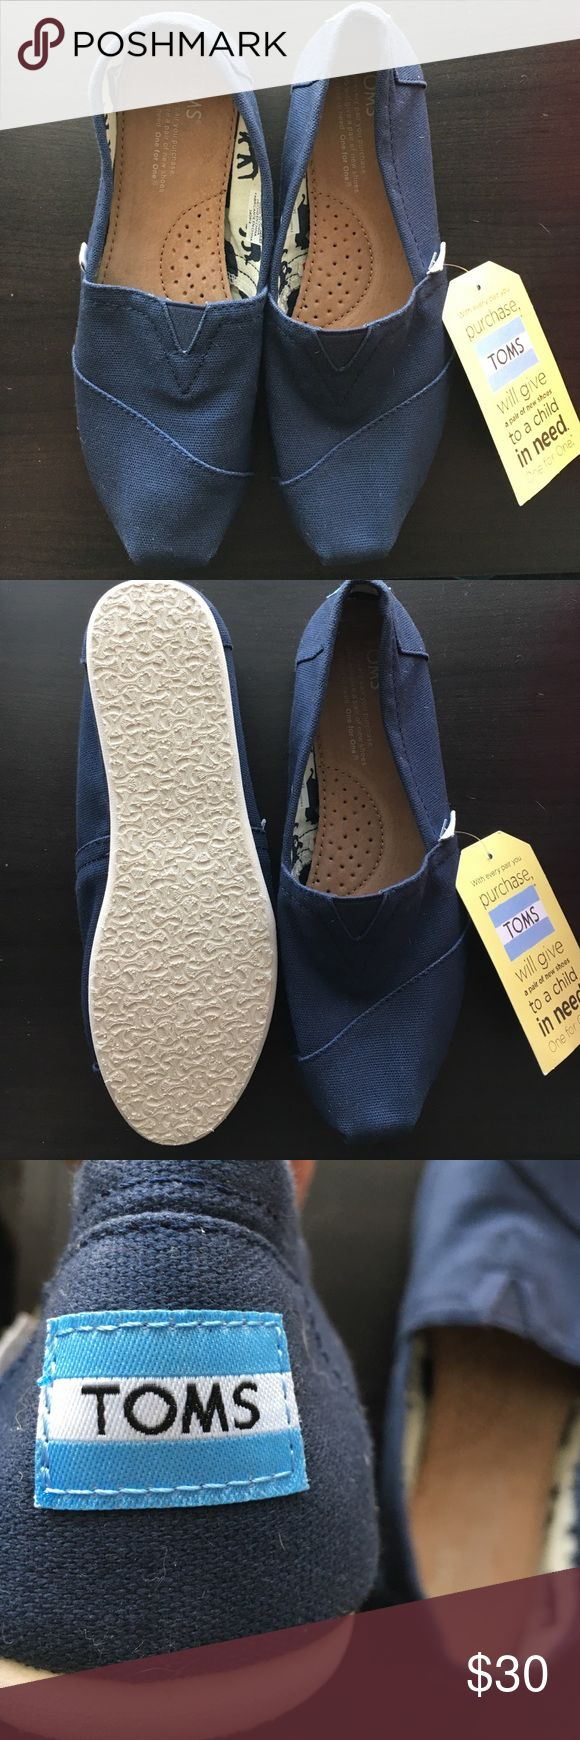 TOMS classics Classic slip on • canvas • navy blue • brand new with tag • never worn TOMS Shoes Flats & Loafers